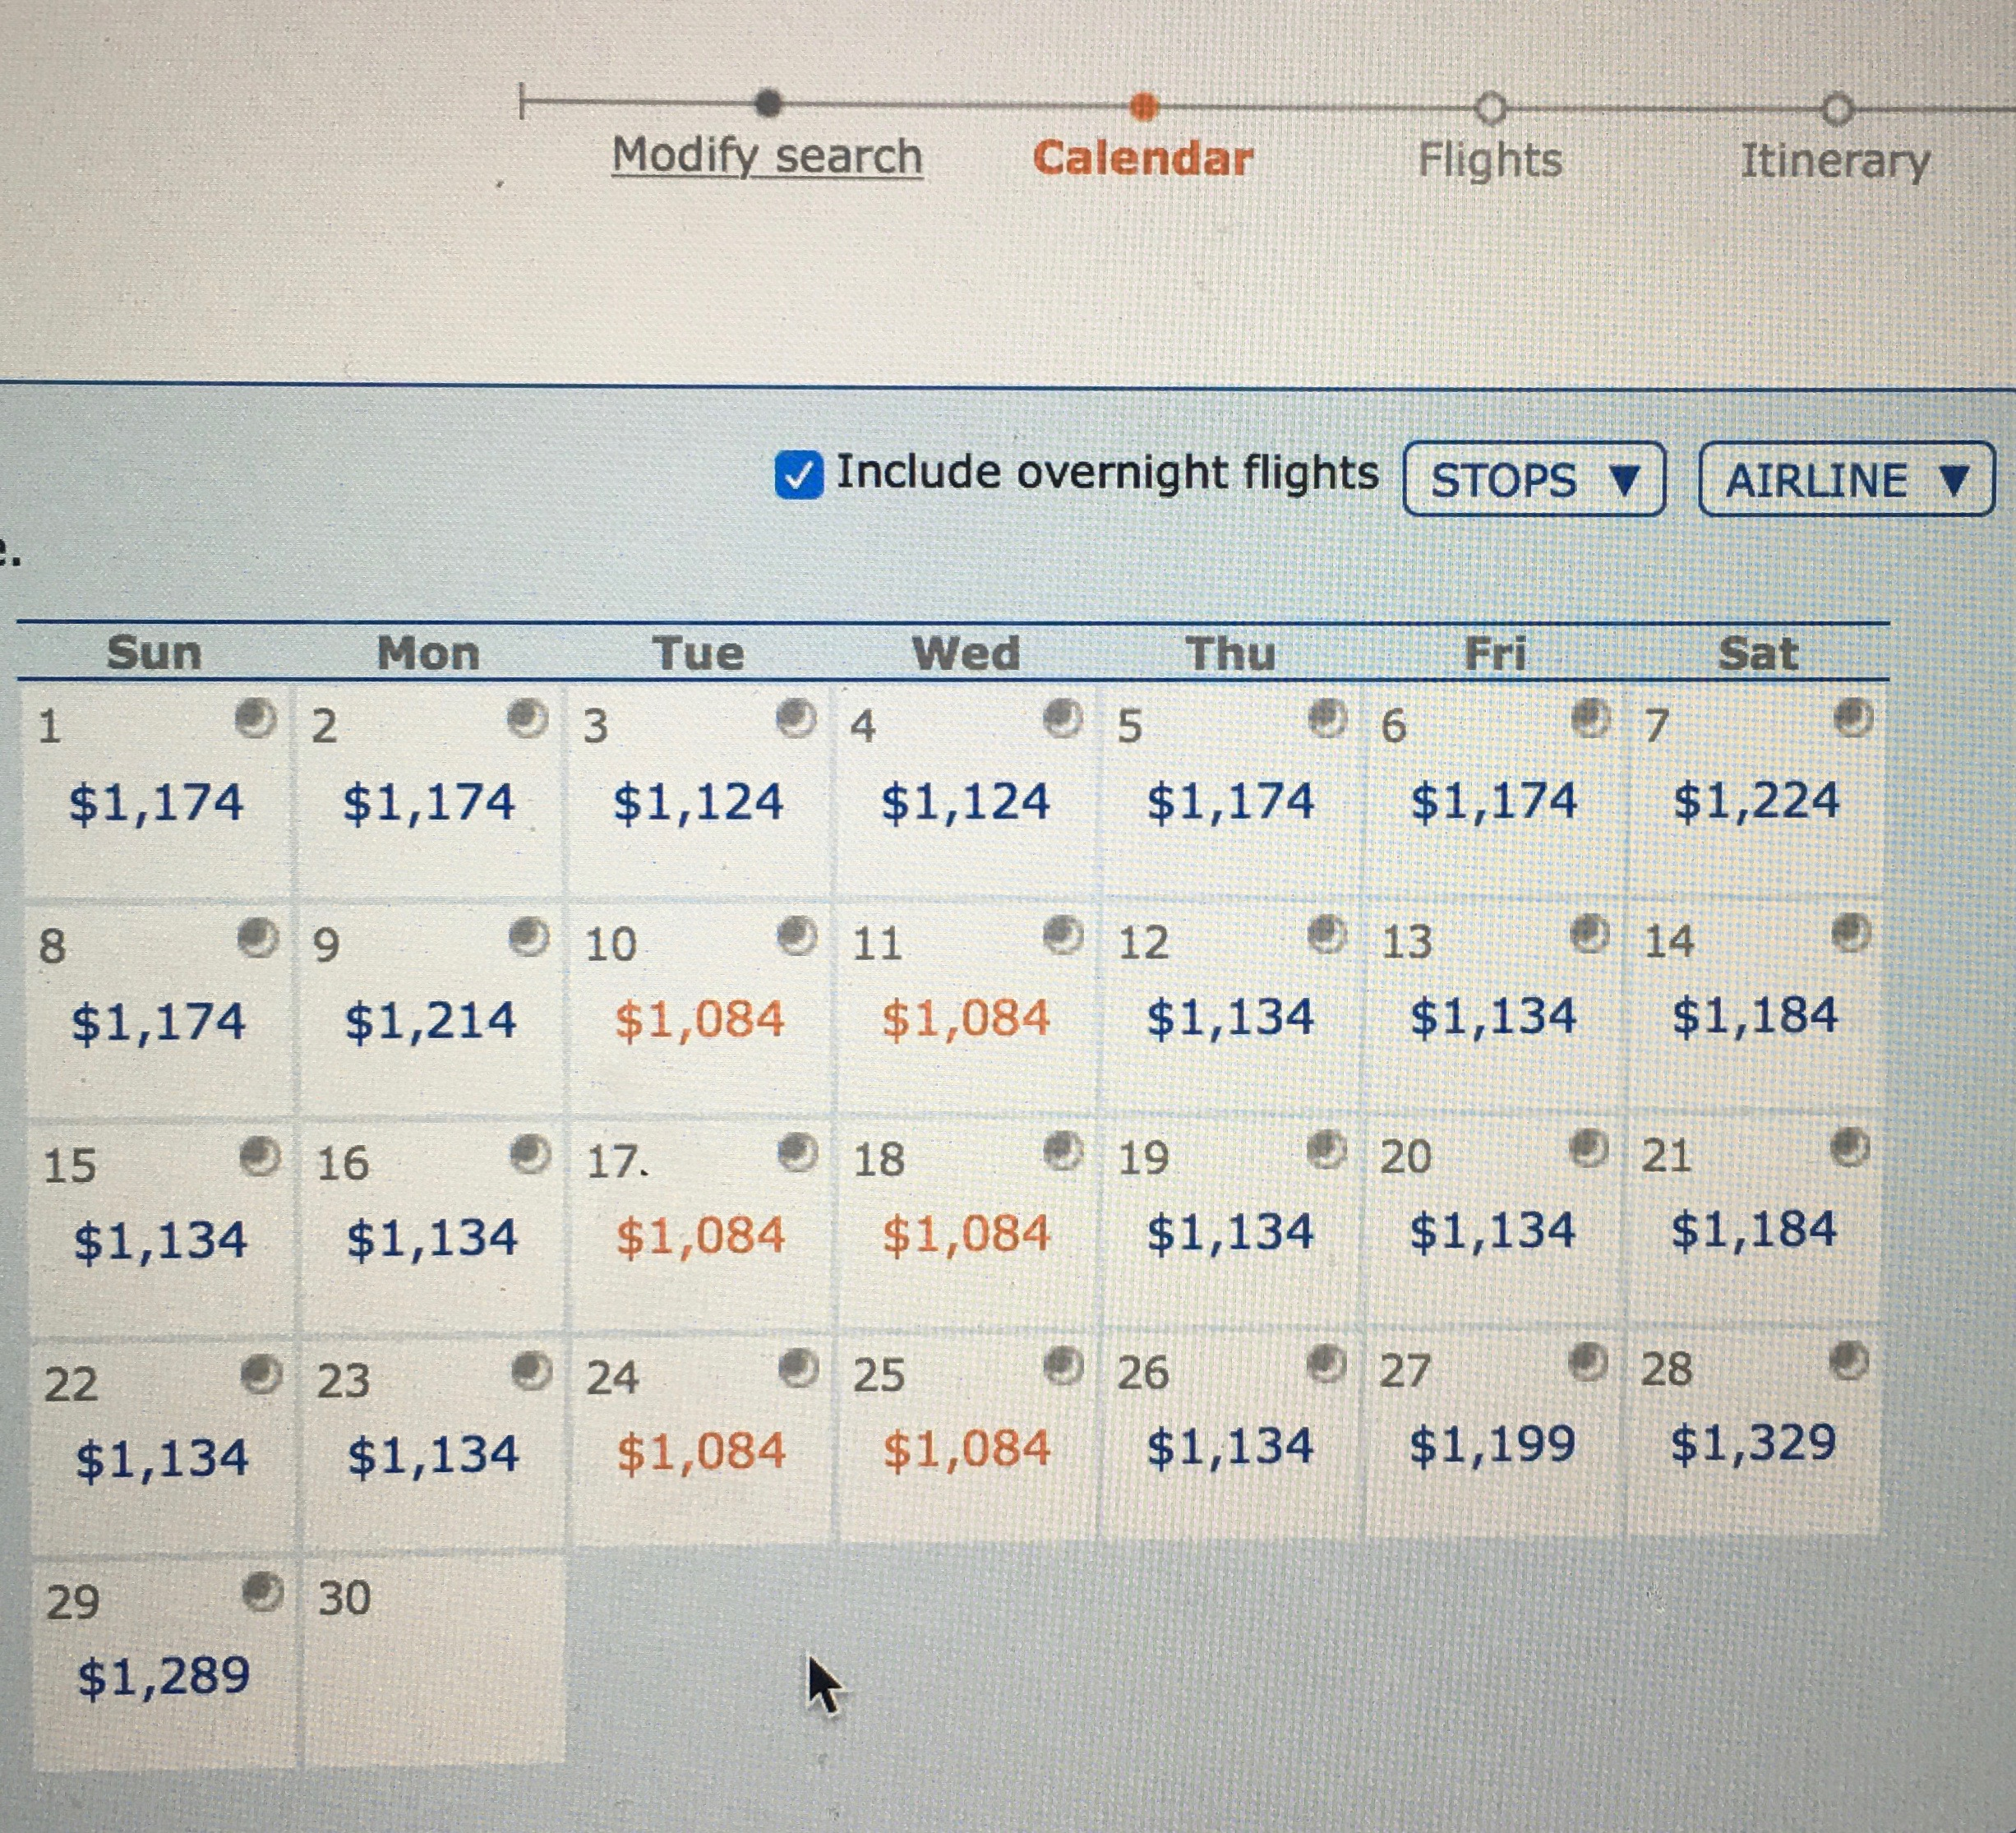 Step 2: Choose the date. The moon indicates an overnight flight.